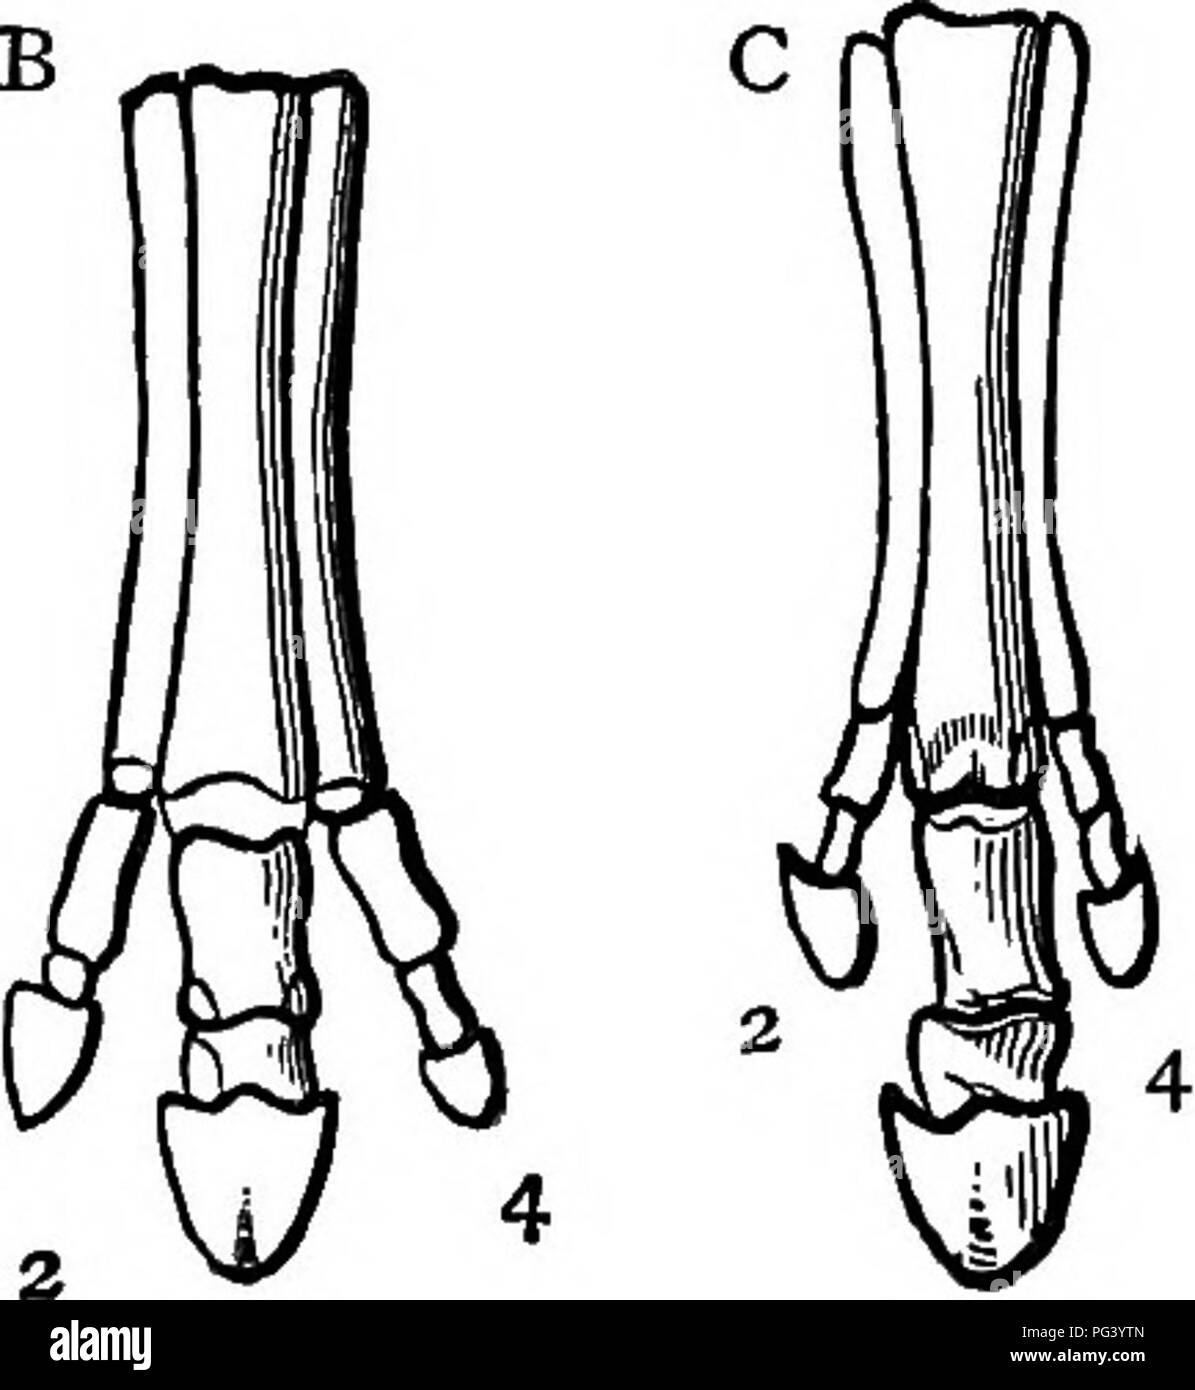 . A text-book of agricultural zoology. Zoology, Economic. 3 â 3 3 3 Fig. 209.âSkeleton of Foot in various forms of Equid^. A, Orohippos (Eocene); b, AncJntherium (Upper Eocene and Lower and Upper Mio- cene) ; 0, Hipparion (Upper Miooeiie and Pliocene); r>, Eguus (Pliocene and Becent). (Nicholson, after Marsh.) There seem to be two distinct lines of descent, one in America and one in Europe. In America the stages are Eohippos, Orohippos, Mesohippos, Miohippos, Protohippos, Pliohippos, and Equus. In Europe, Hyracotherium, Palseotherium, Anchi- therium, Hipparion, and Equus.^ ^ The living and  - Stock Image